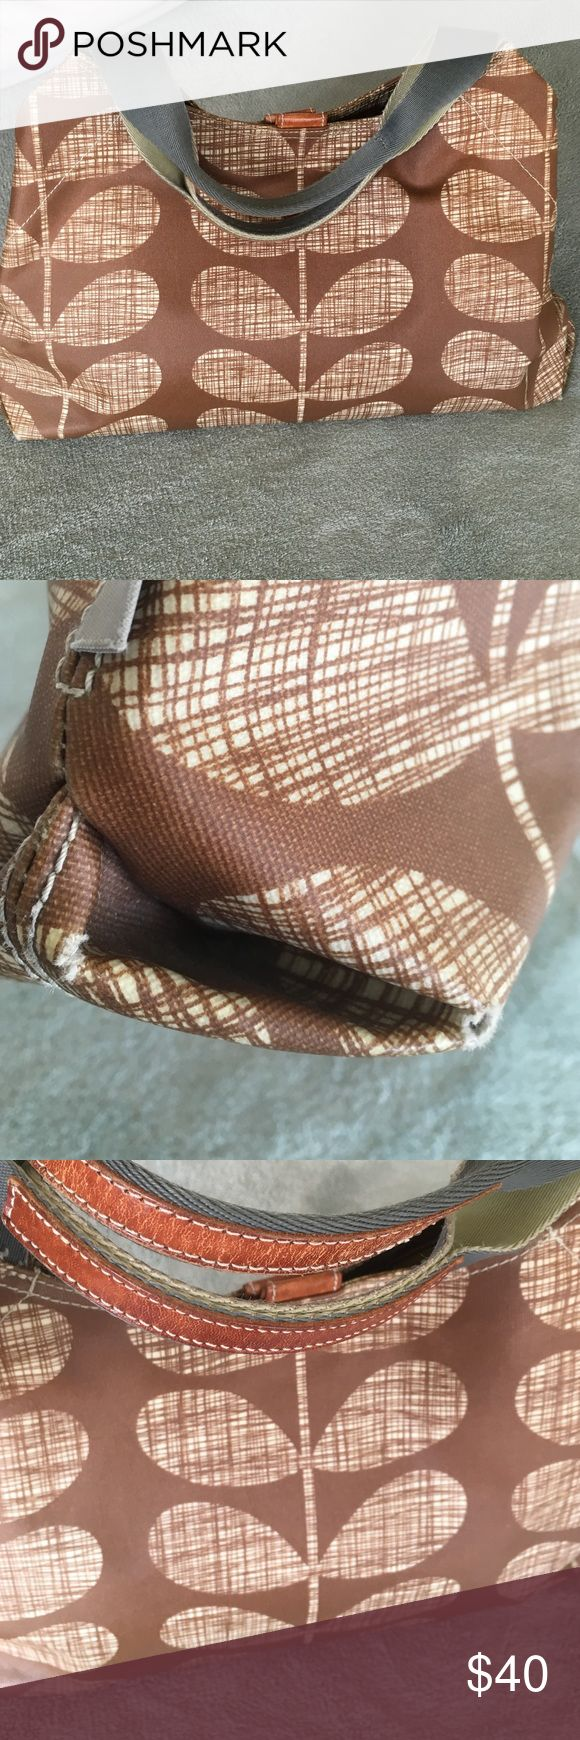 Orla Kiely Bag So pretty for Spring 🌞 measuring 16x10 with approx 7 inch drop, Lovely tree pattern, Canvas & leather handle- leather magnetic closure, attached key fob, minimal wear on inside, Bag body in good condition BUT all 4 corners are showing some wear & splits as shown in photo- Great way to try out luxury brand / very open to offers! Orla Keily Bags